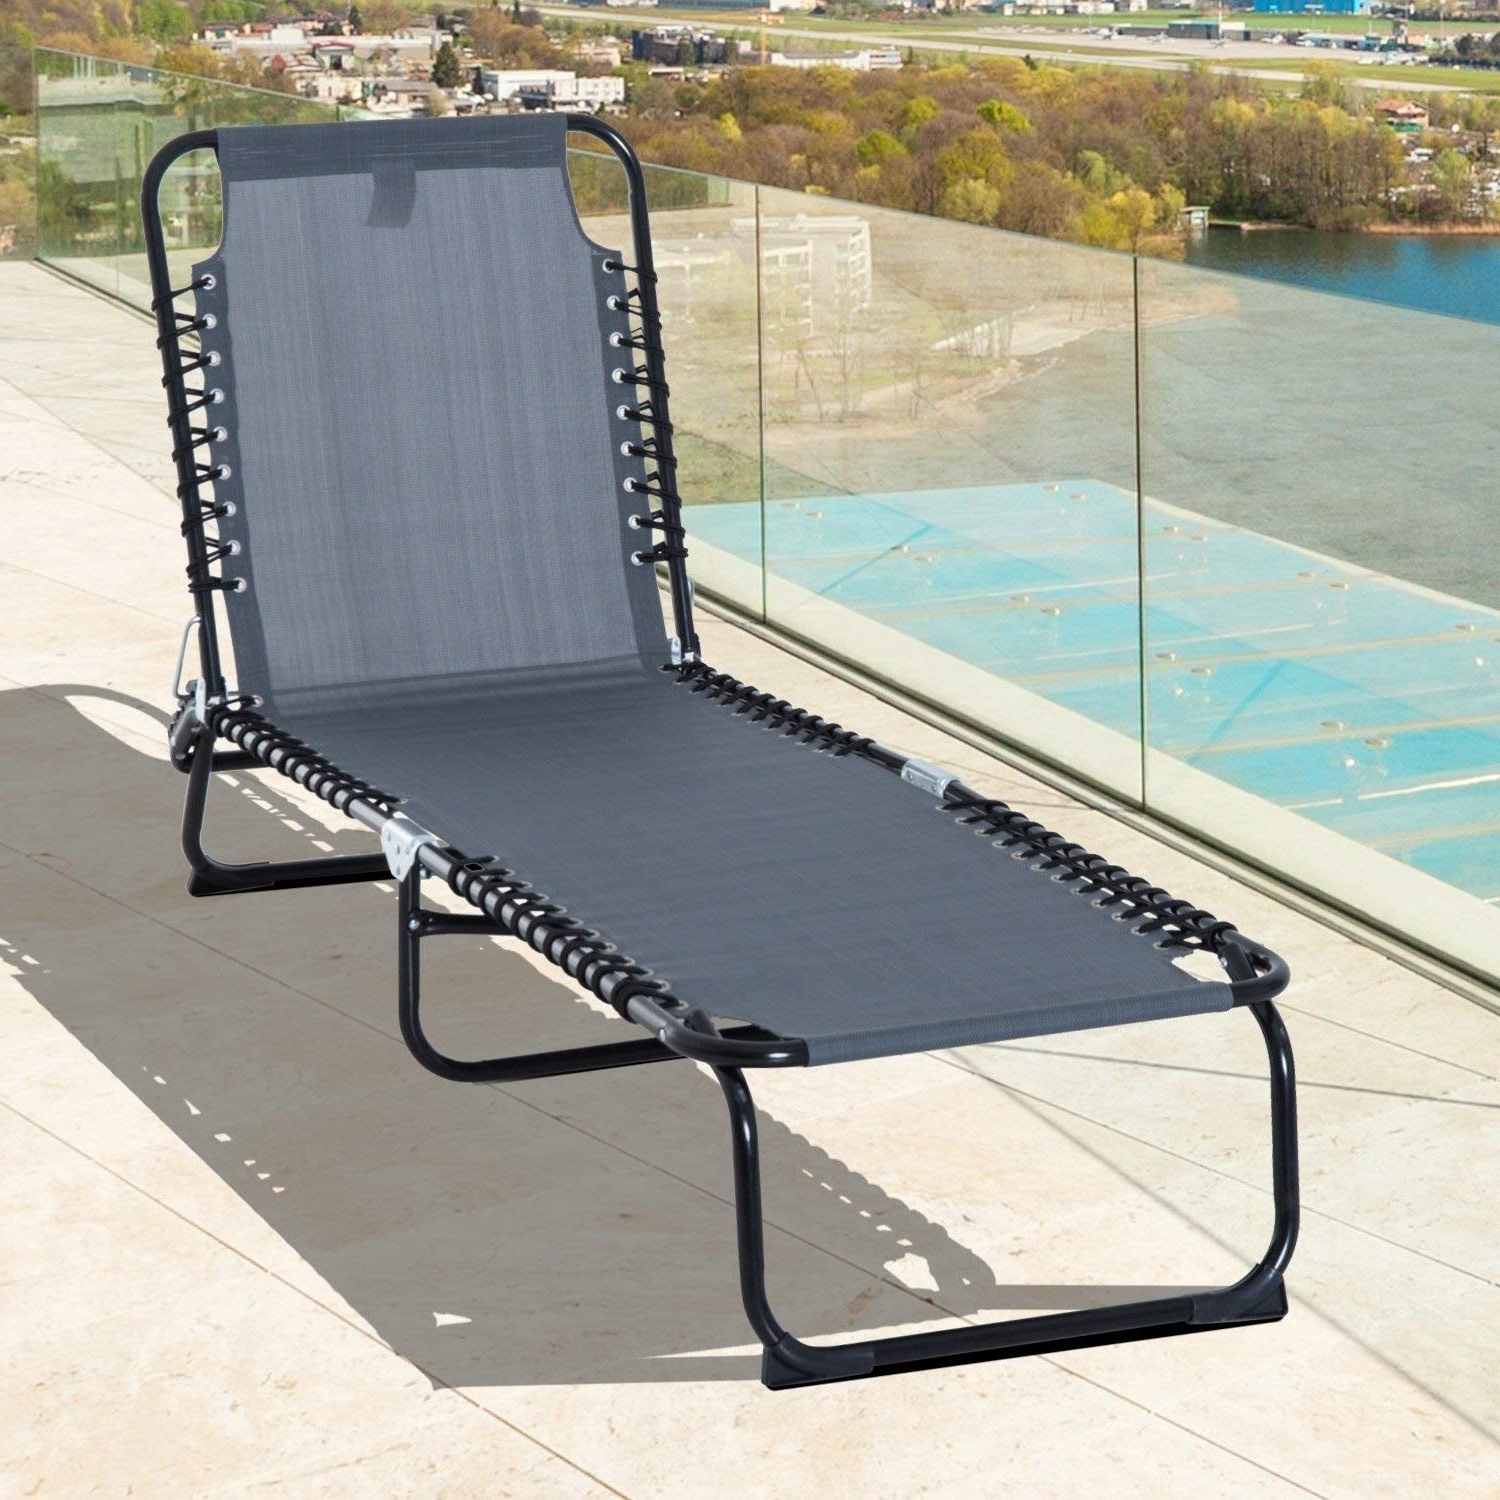 Outsunny 3 Position Portable Reclining Beach Chaise Lounge Folding Chair Outdoor Patio – Grey Within Fashionable 3 Position Portable Reclining Beach Chaise Lounges (View 15 of 25)